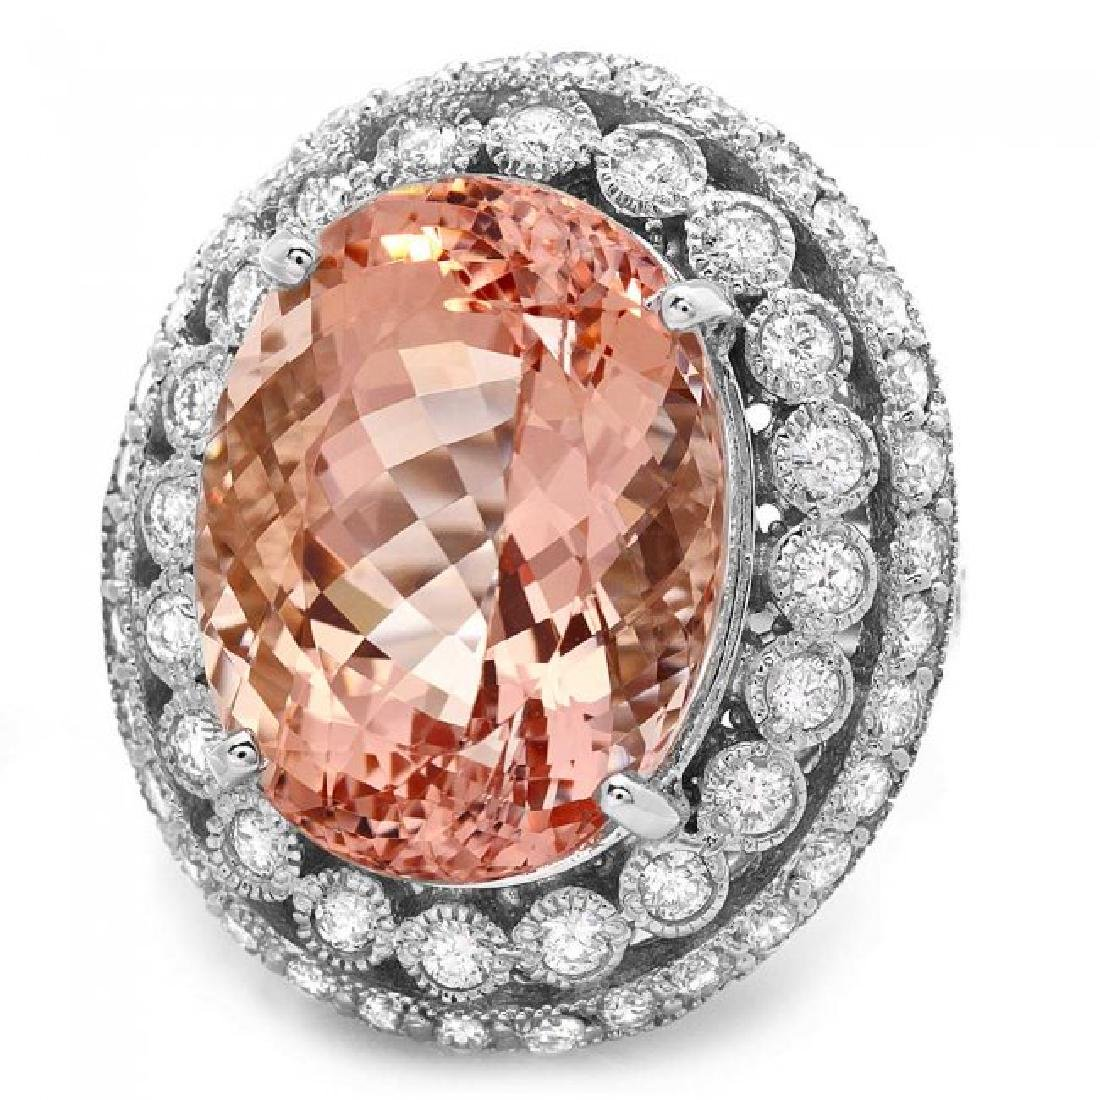 14k Gold 16.20ct Morganite 1.85ct Diamond Ring - 3